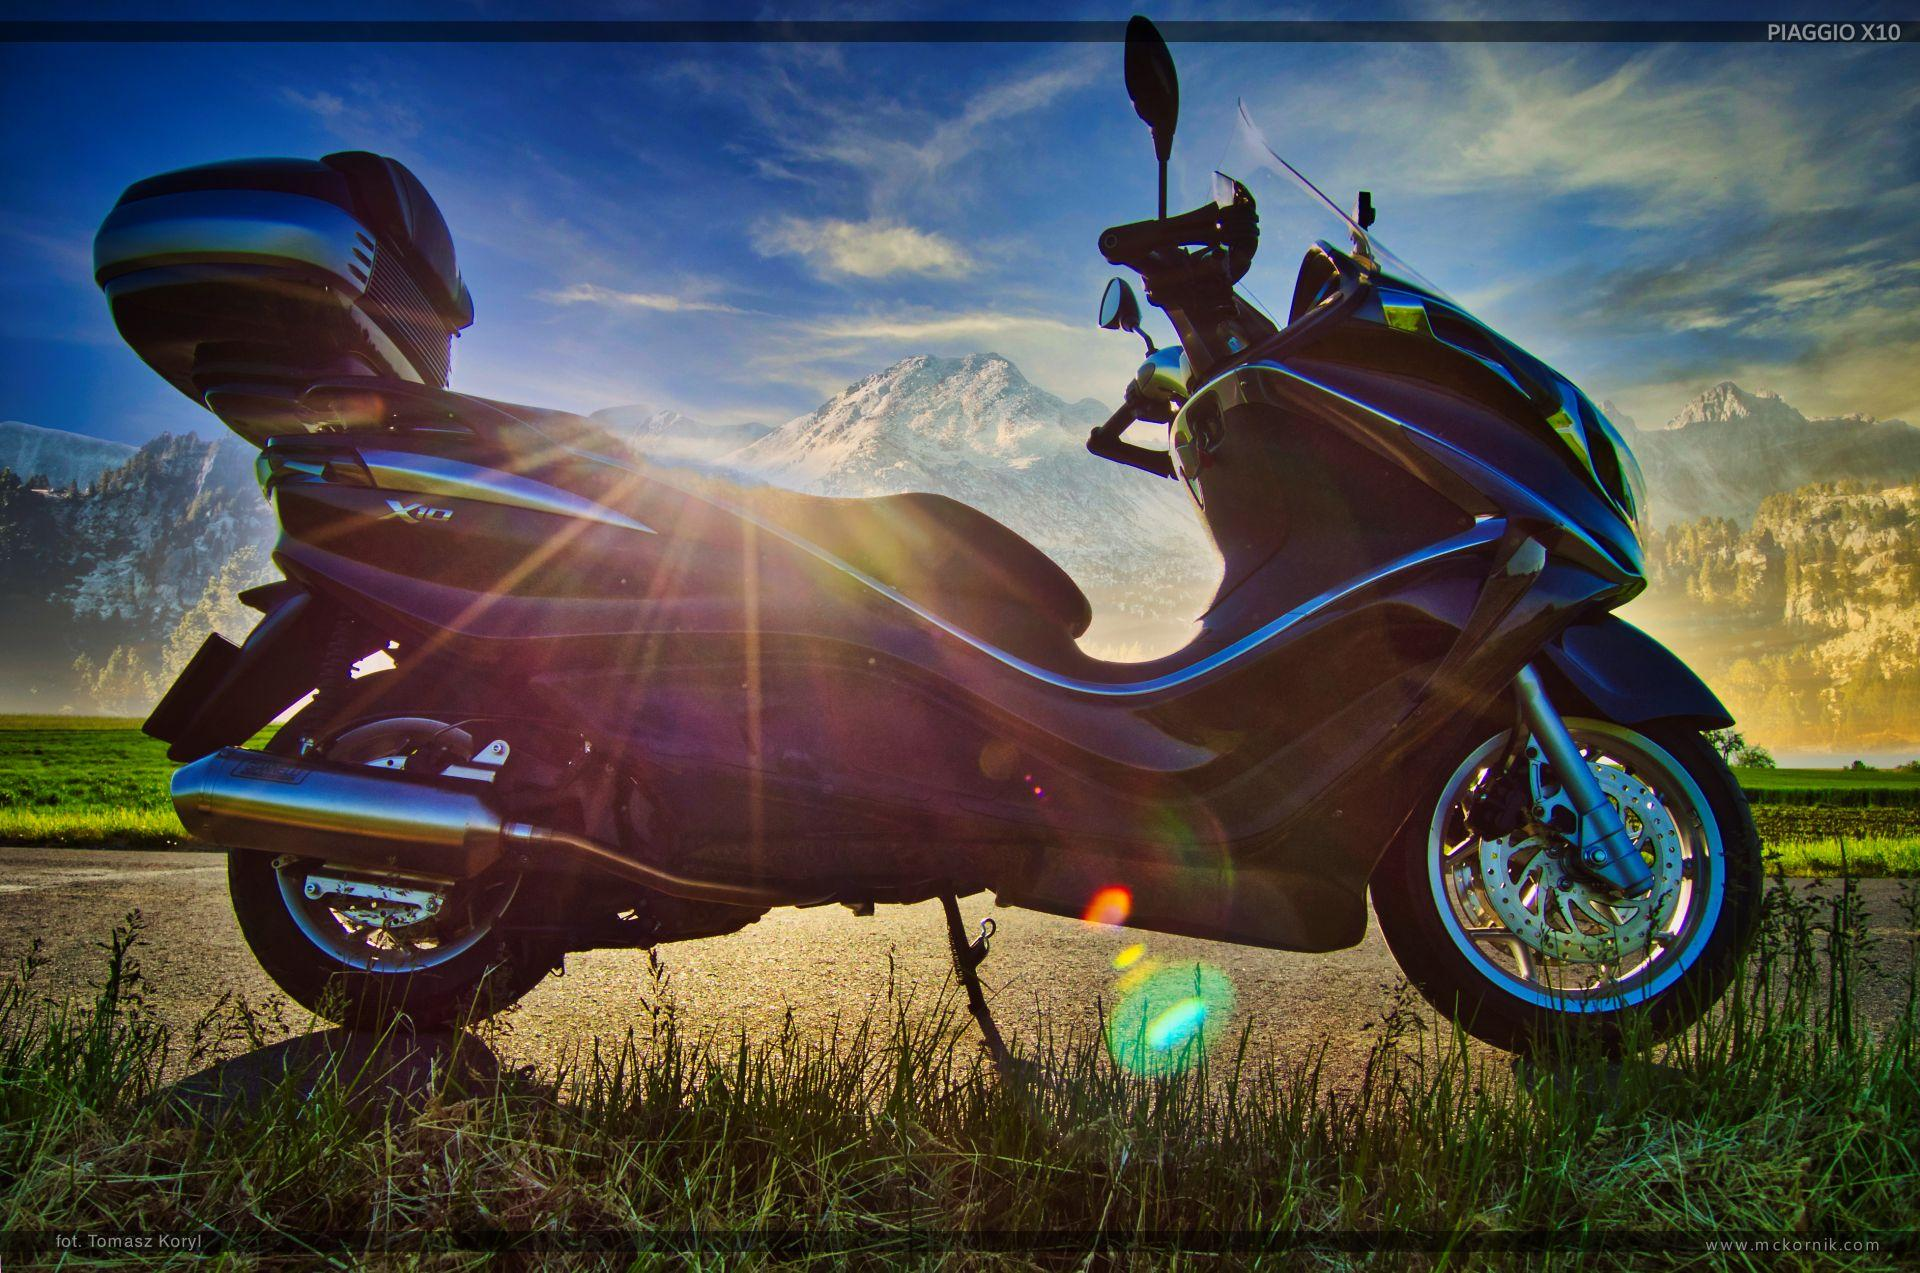 maxi scooter piaggio x10  motorcycle photos and wallpapers - mckornik.com - #scootertouring, #scooter, #scootertravel, #maxiscooter, #piaggio, #piaggioX10, #piaggio350